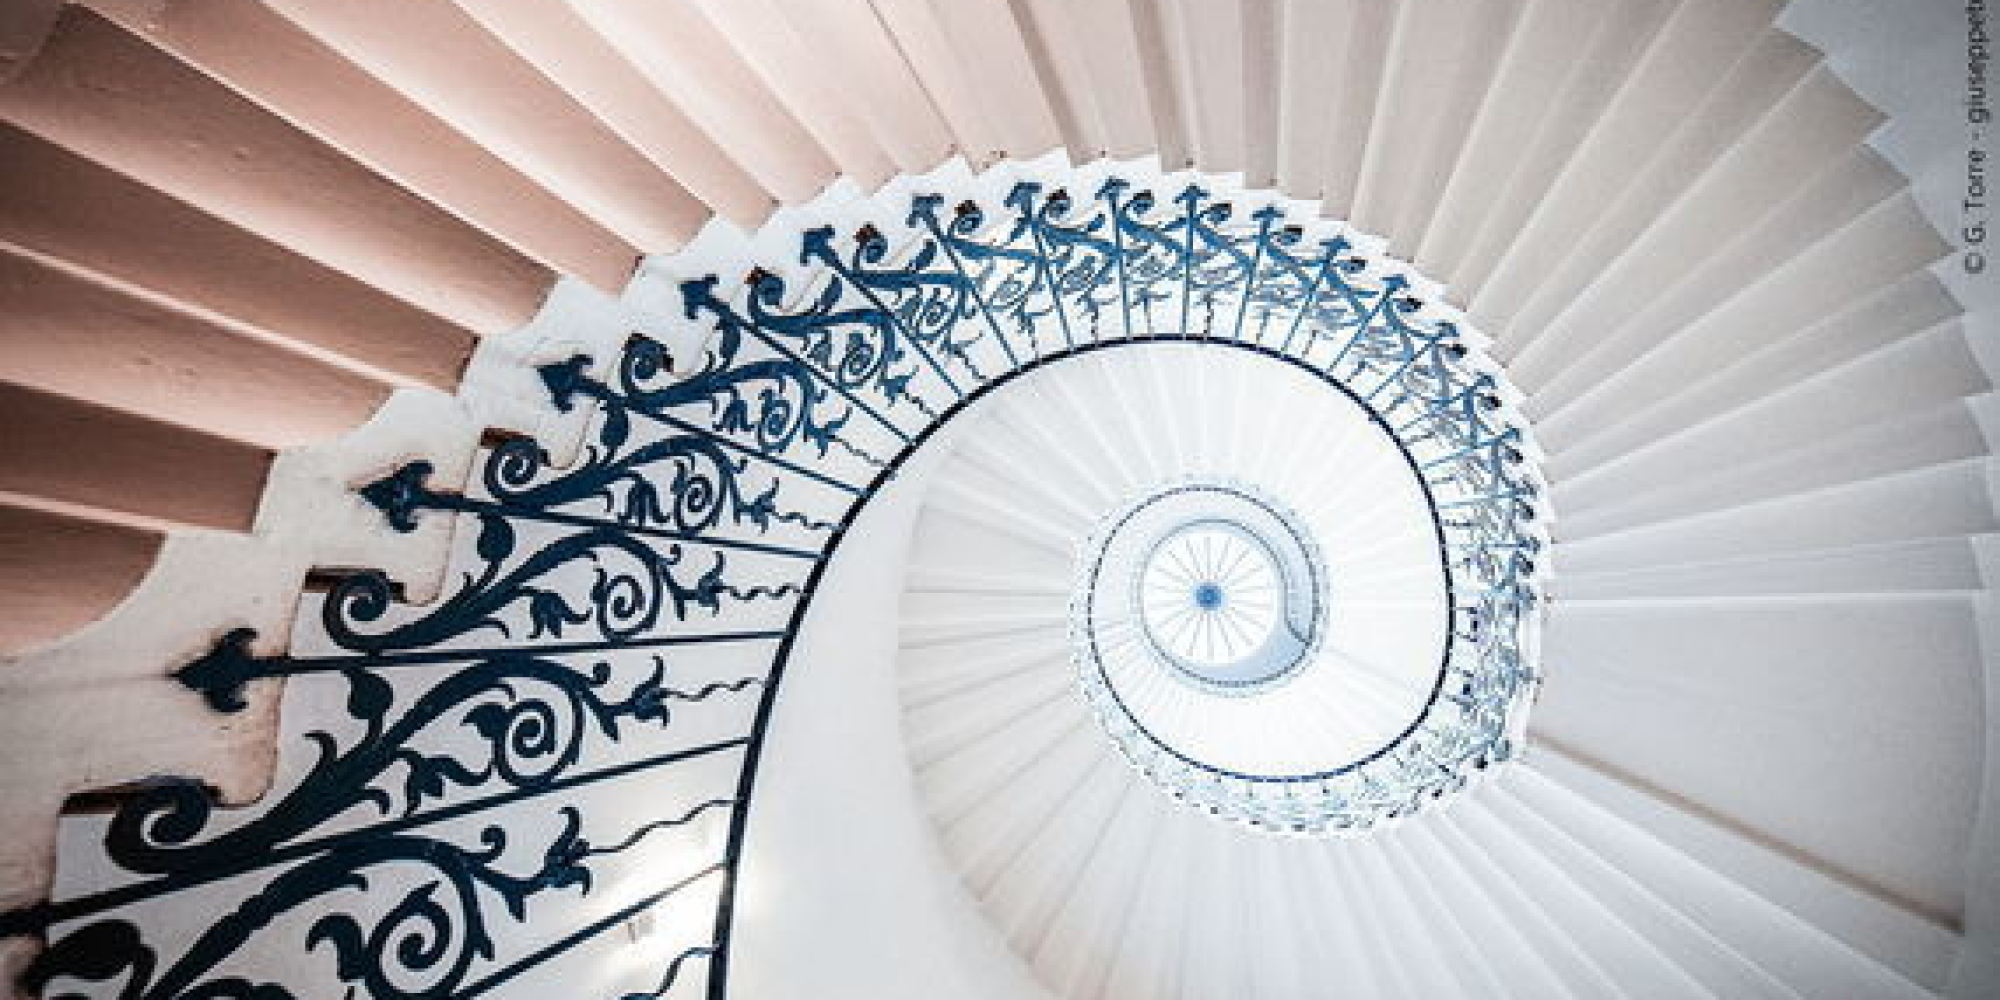 Lose Yourself In This Collection Of Entrancing Spiral Staircase Photos |  HuffPost